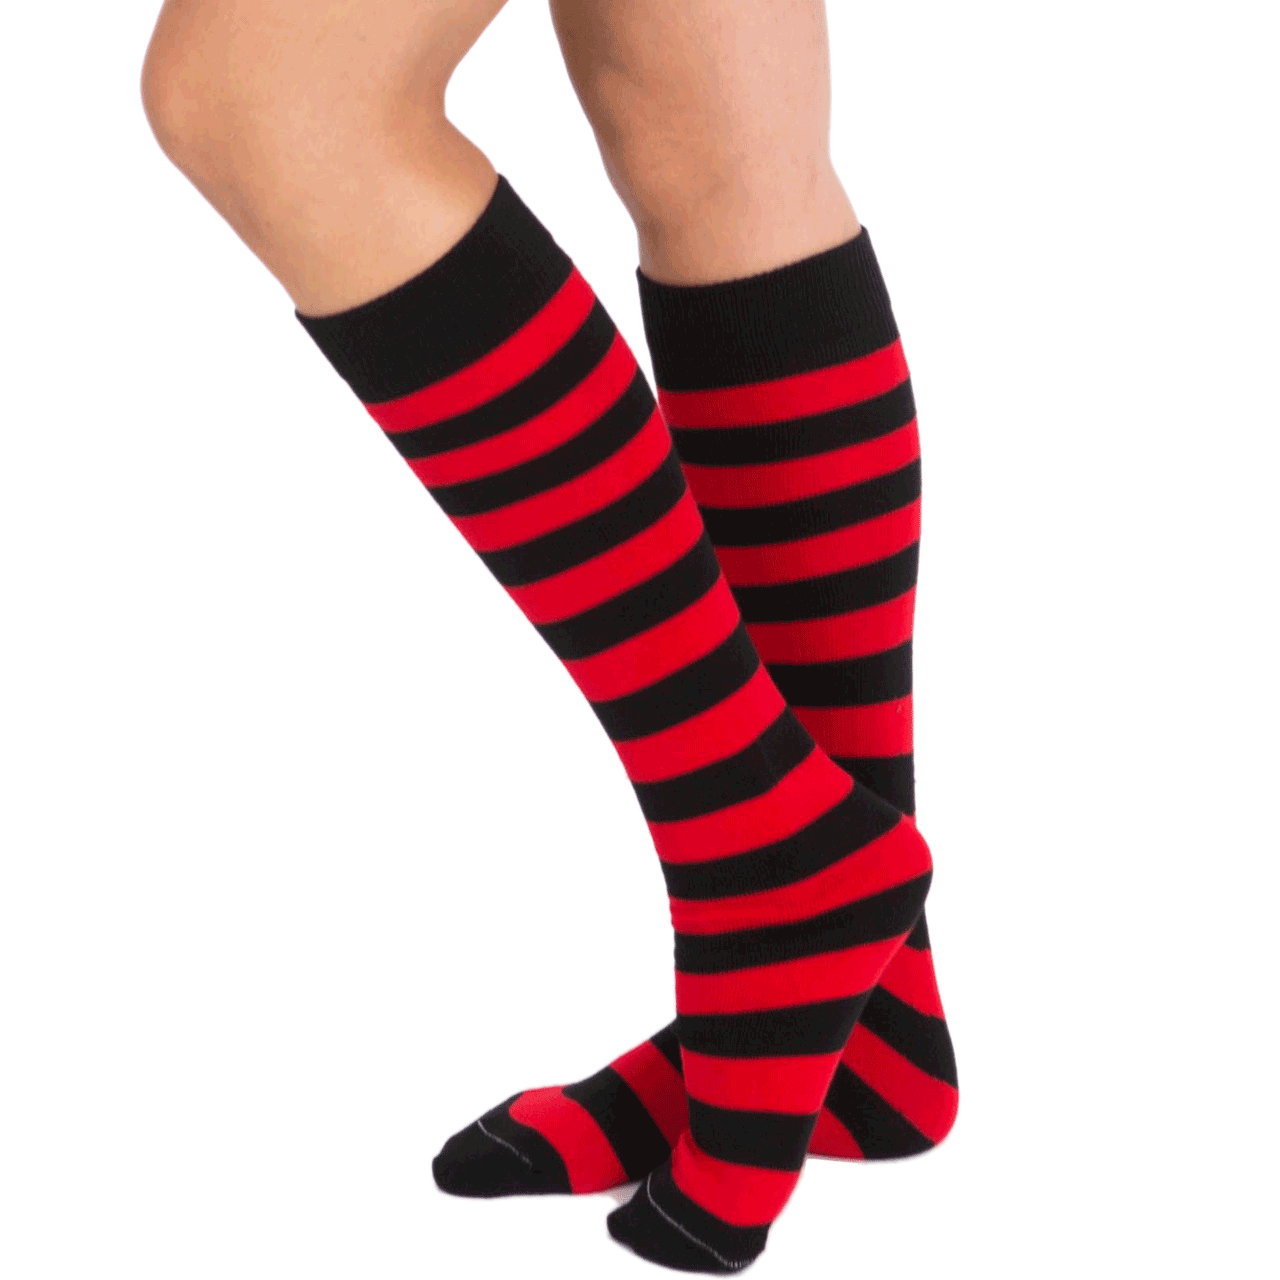 Find great deals on eBay for red and black socks. Shop with confidence. Skip to main content. eBay: Tokyo Ghoul Anime Black And Red Knee High Socks. Brand New. $ List price: Previous Price $ Buy It Now. Free Shipping. 55% off. Tokyo Ghoul Anime Black And Red Knee High Socks .